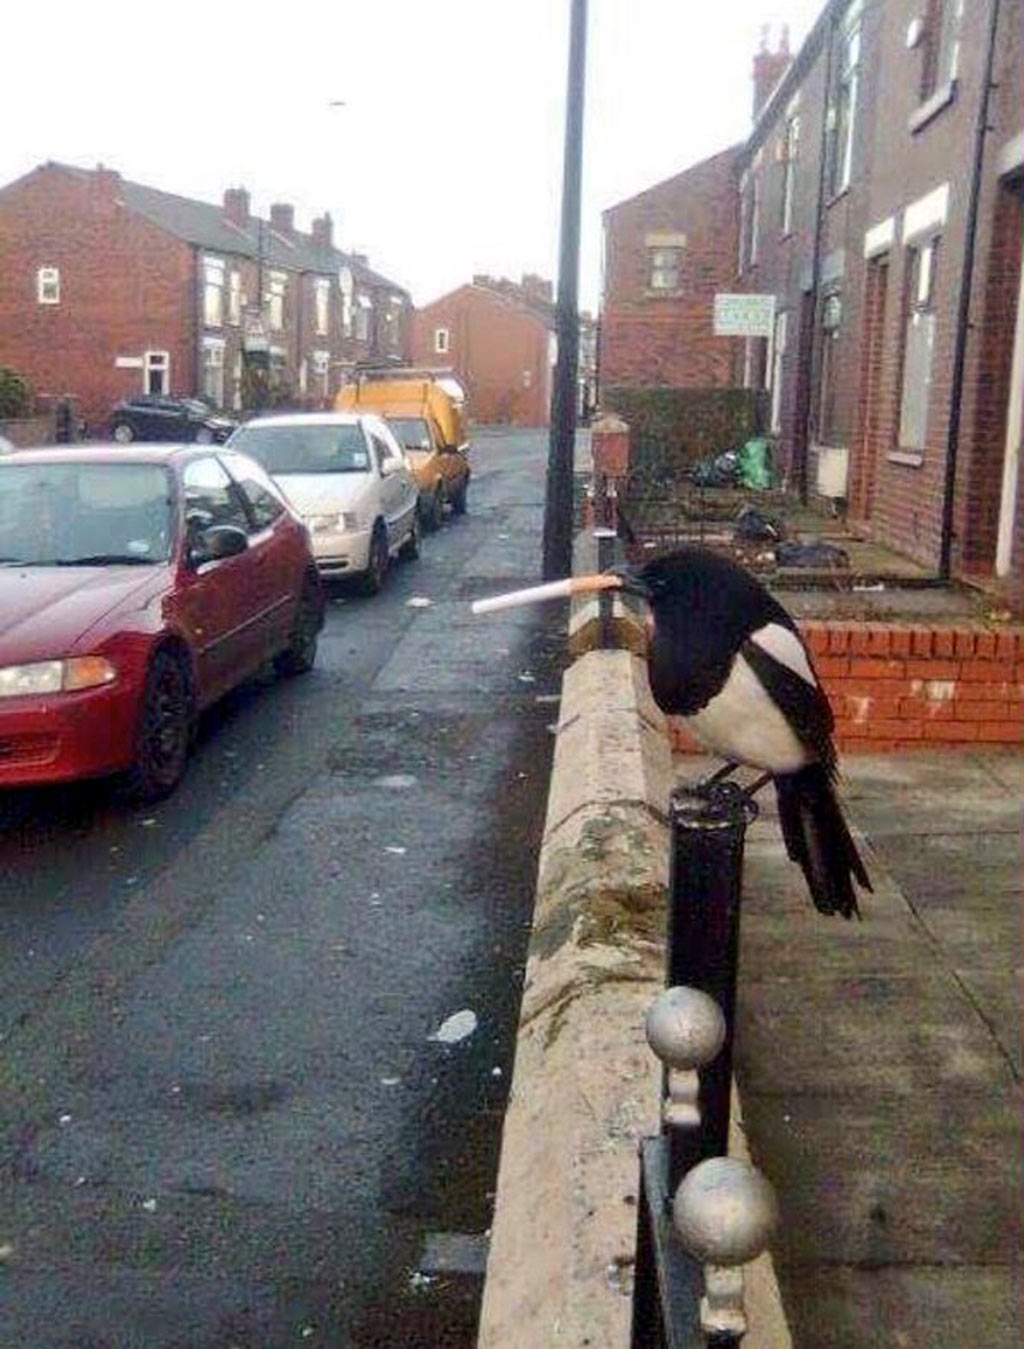 Magpie with cigarette in its beak at heart of Twitter storm